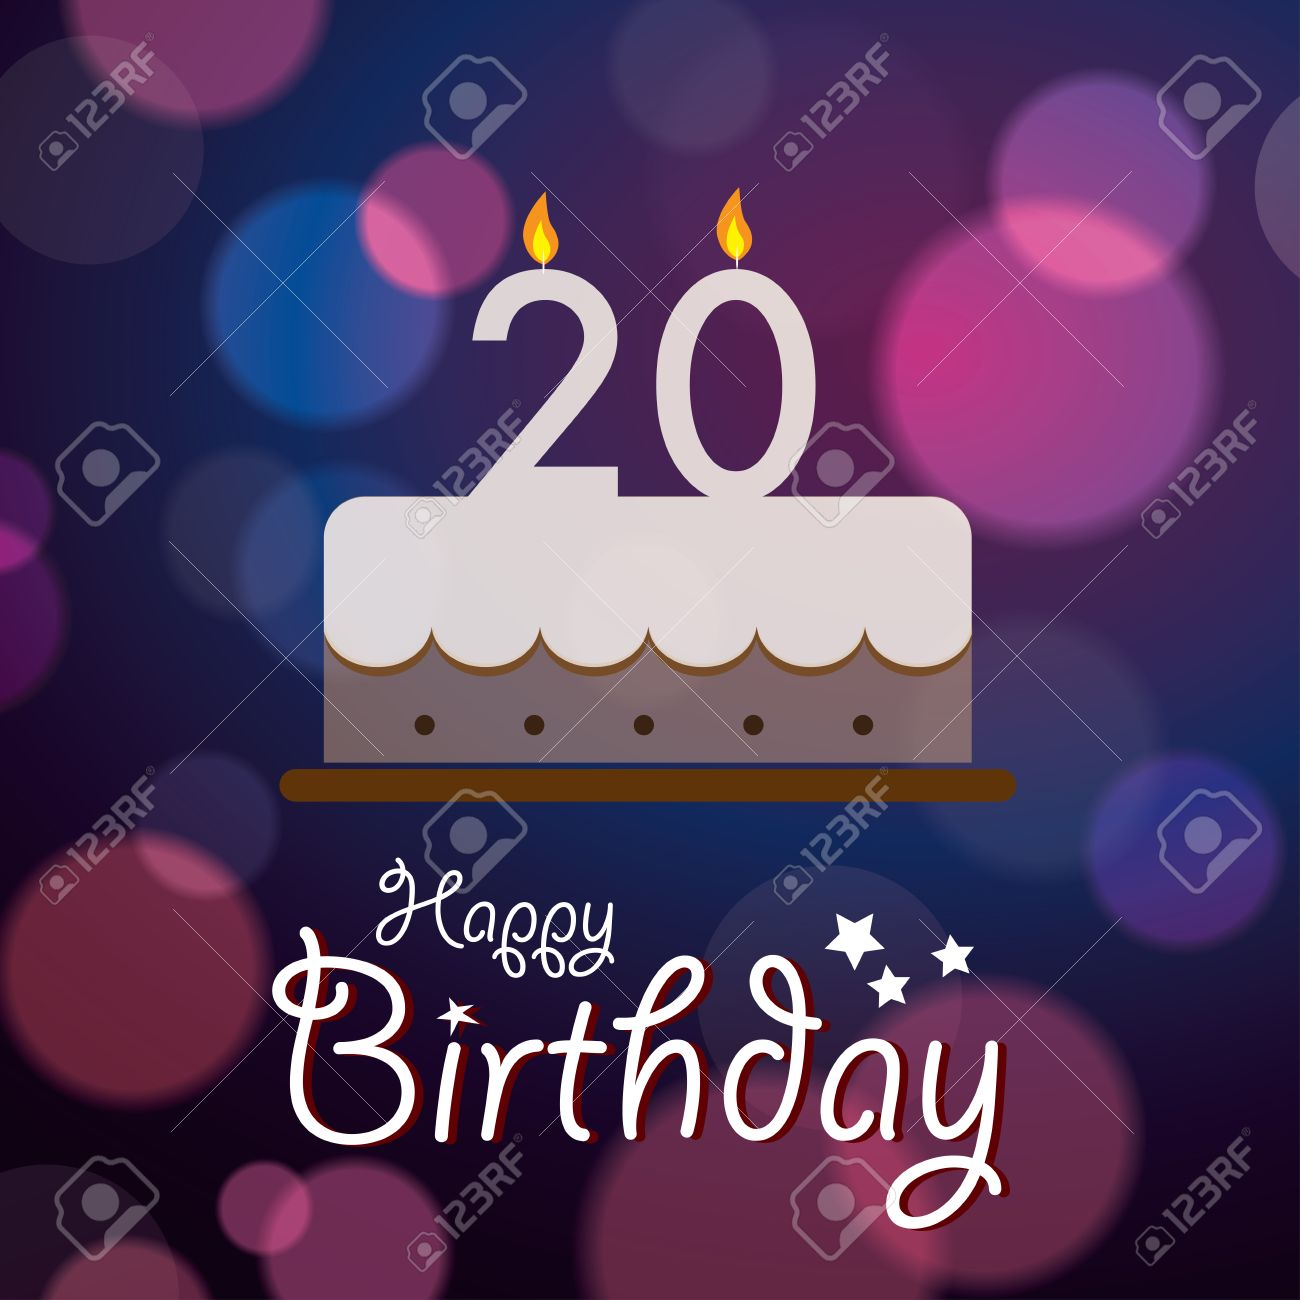 Happy 20th Birthday Bokeh Vector Background With Cake